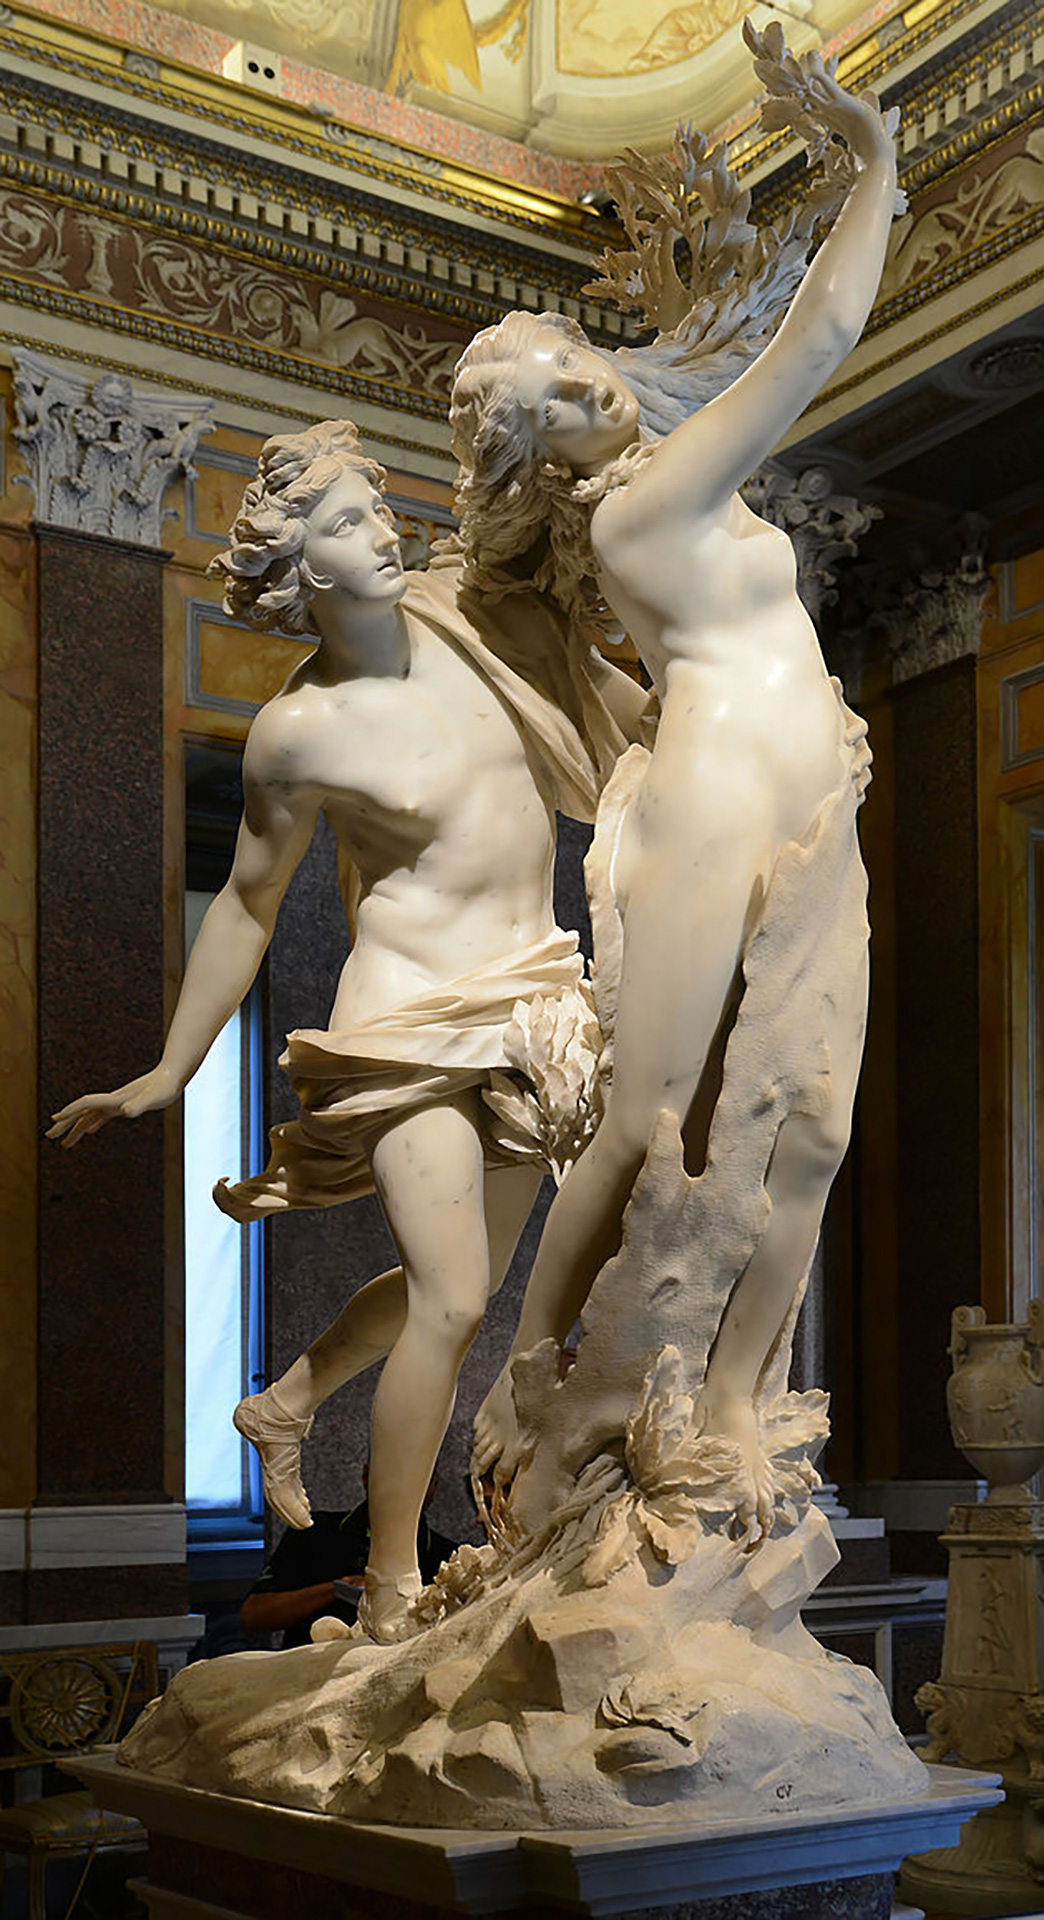 Baroque sculpture inspiration